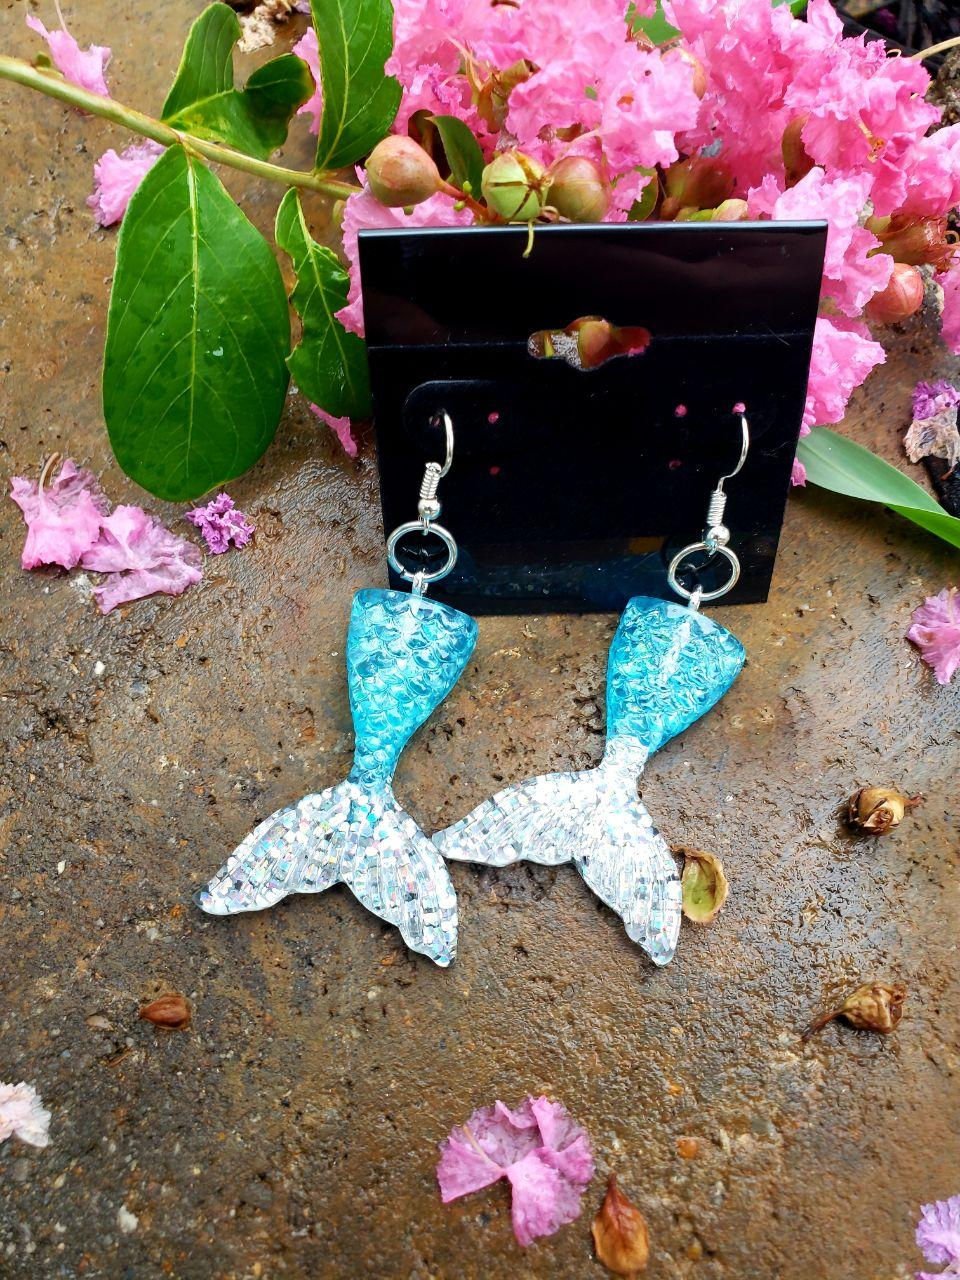 Mermaid Tail Earrings, Earrings, Earrings, Resin, Wearable - Sciggles